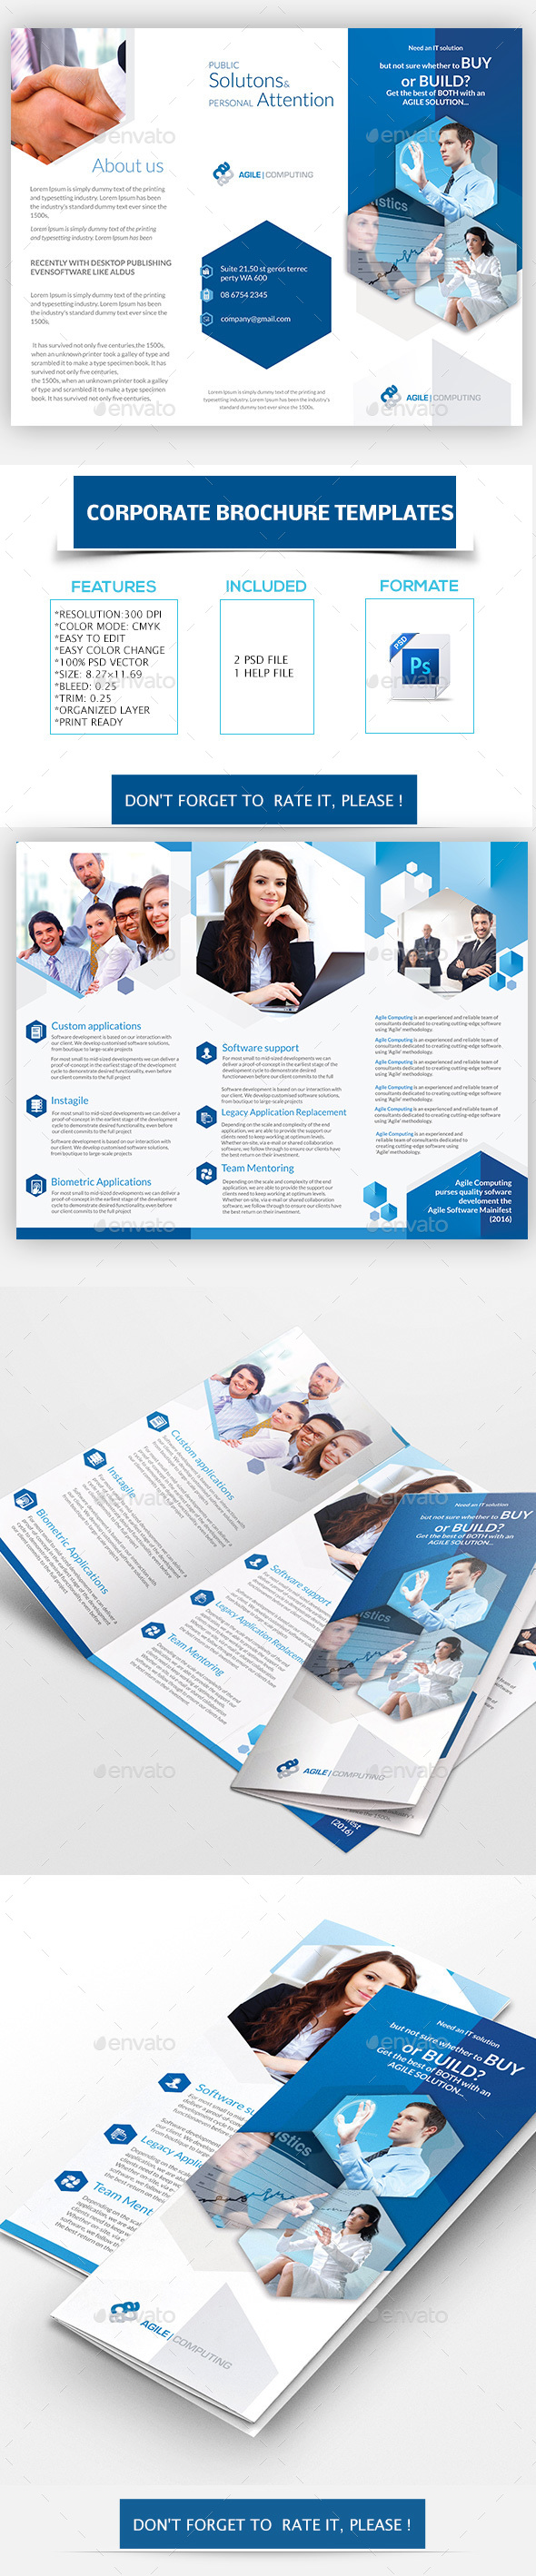 Corporate Brochure Templates - Corporate Brochures